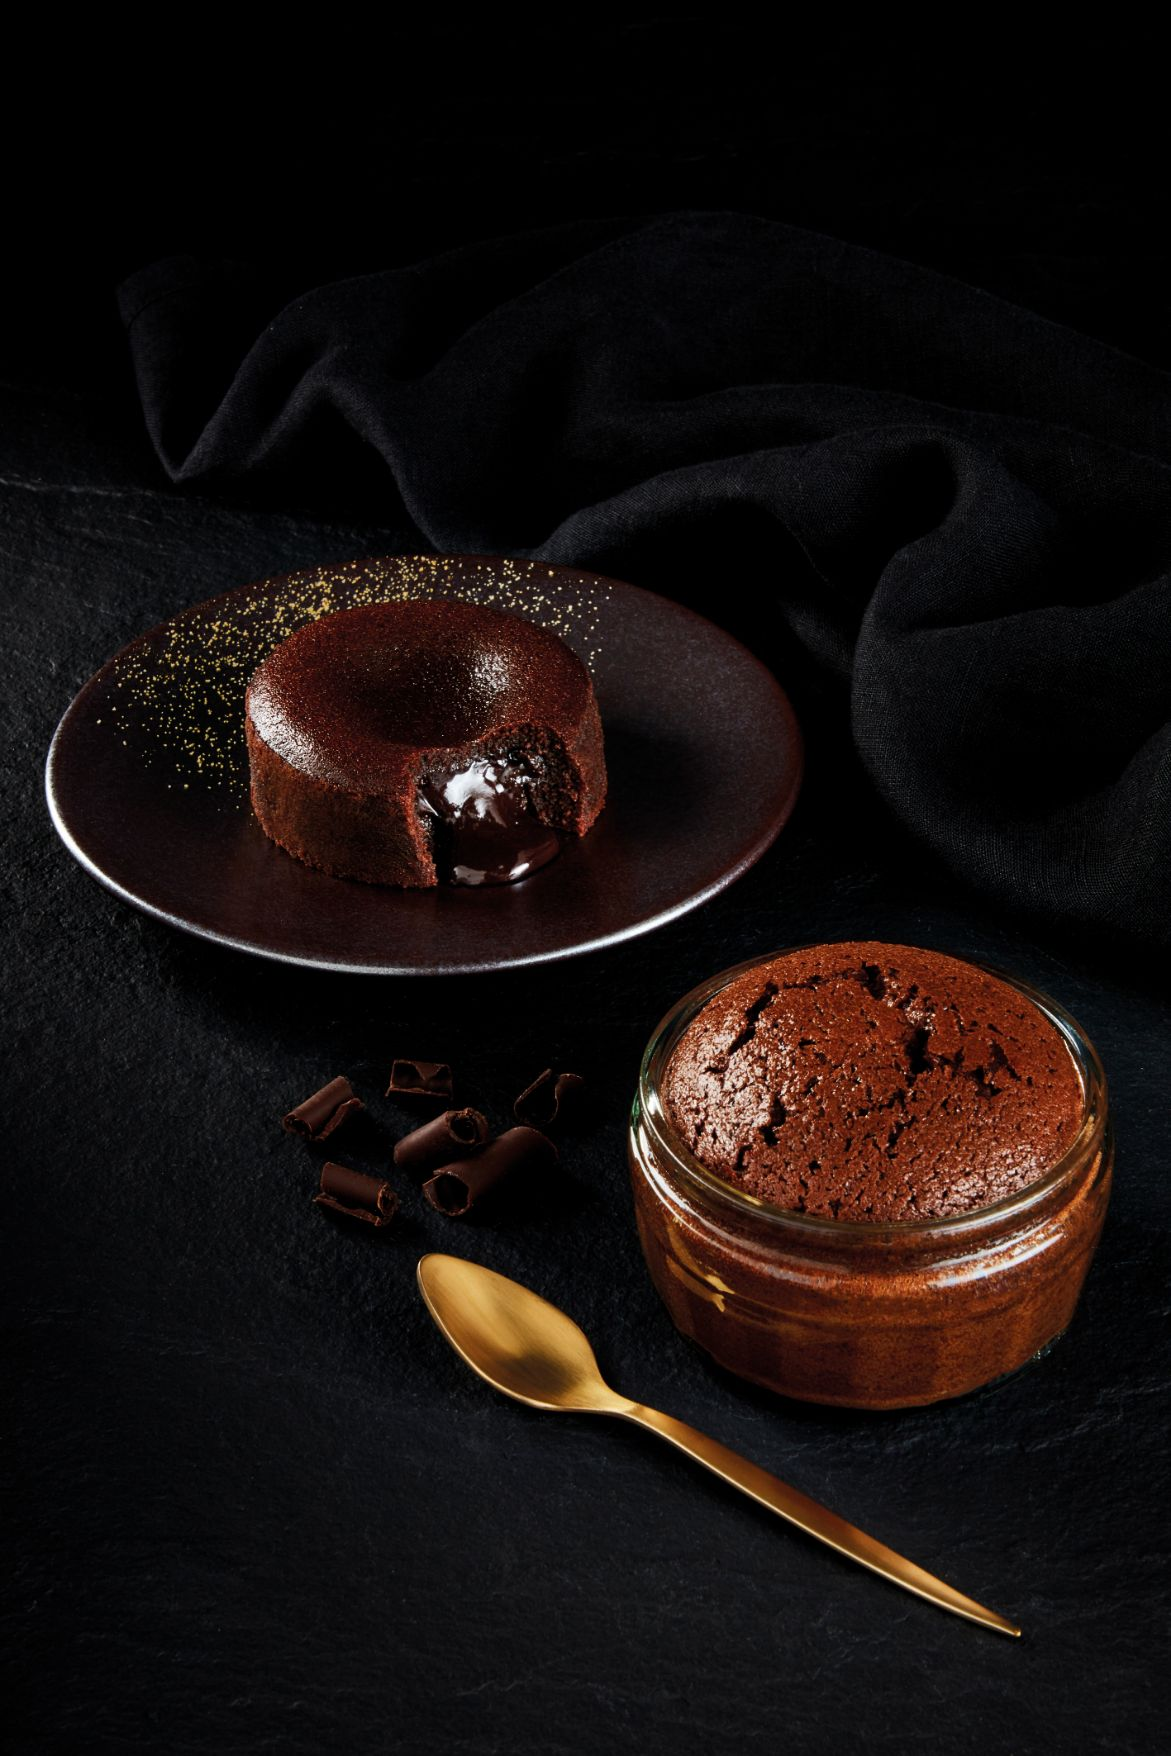 Gü Chocolate soufflé on a dark background with a gold spoon and speckled gold plate